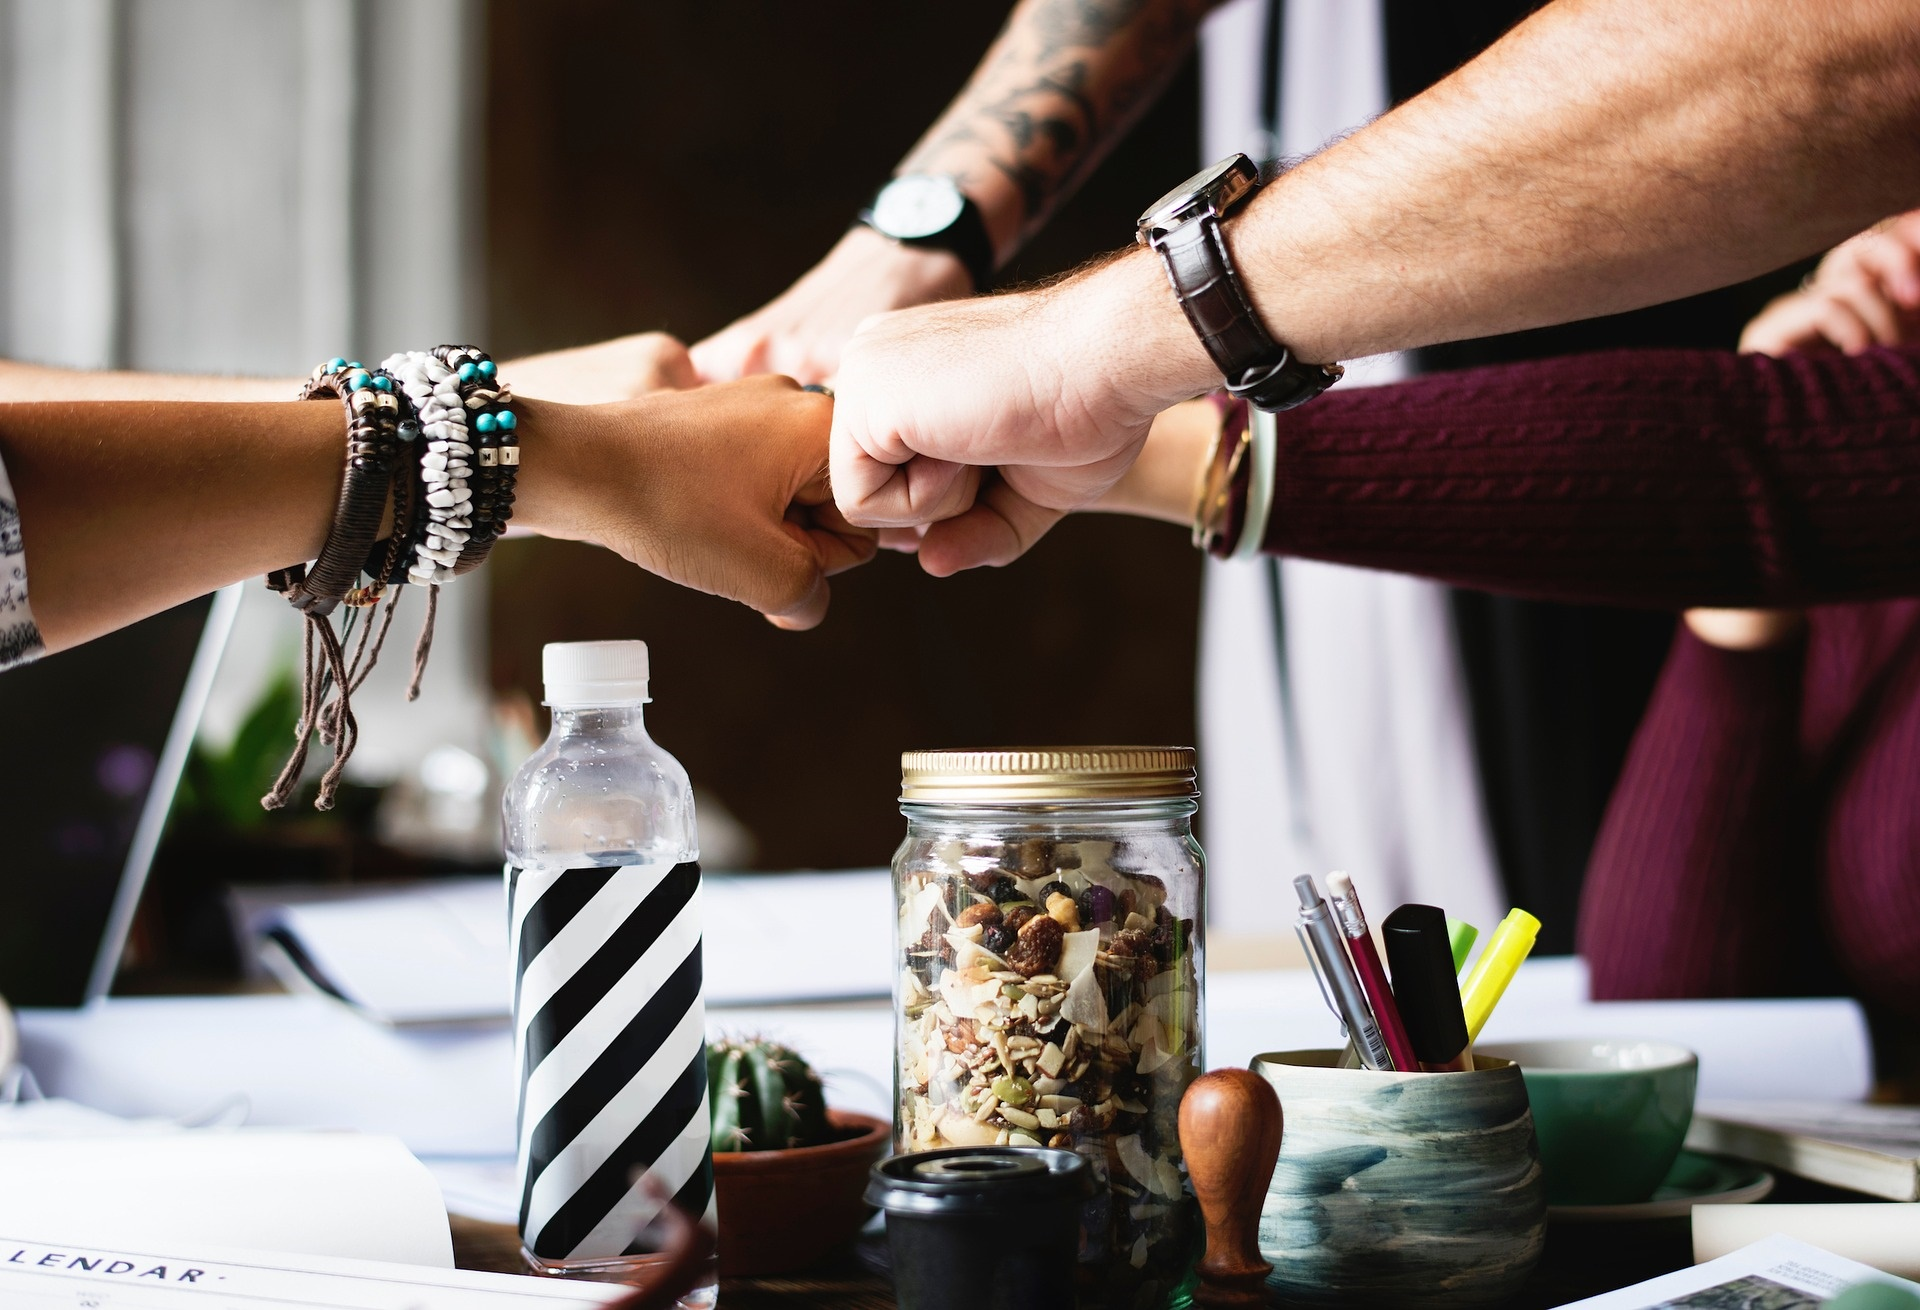 Should You Join a Critique Group? By All Means, Yes! Here's Why…